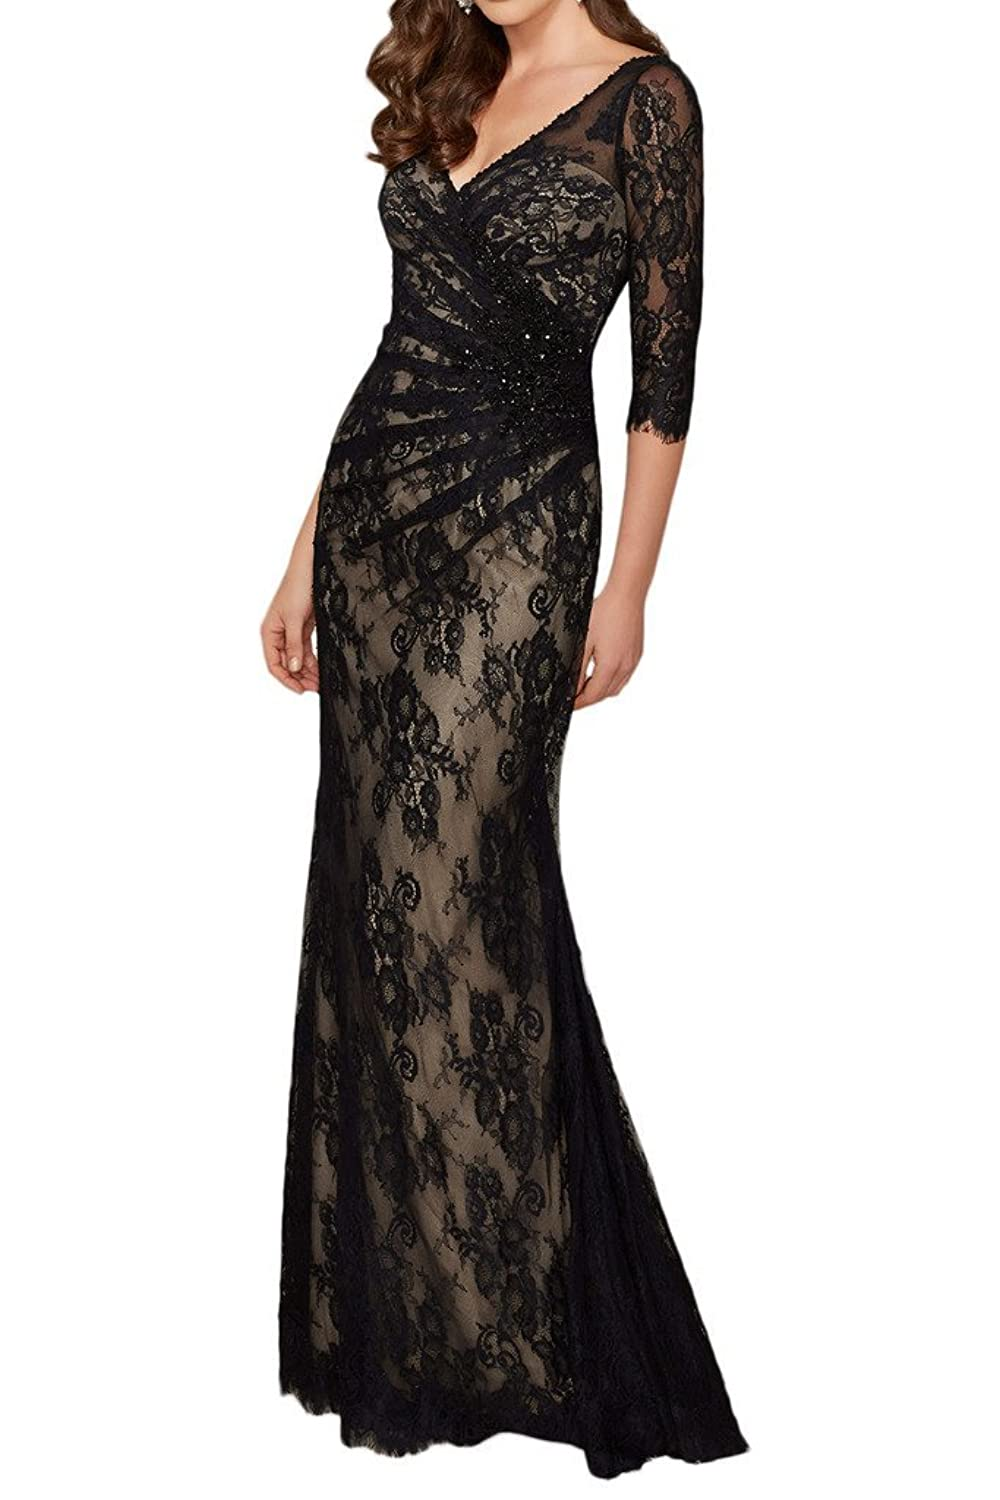 Prommay Lace V-Neck Mother of the Bride Dress with Half Sleeves